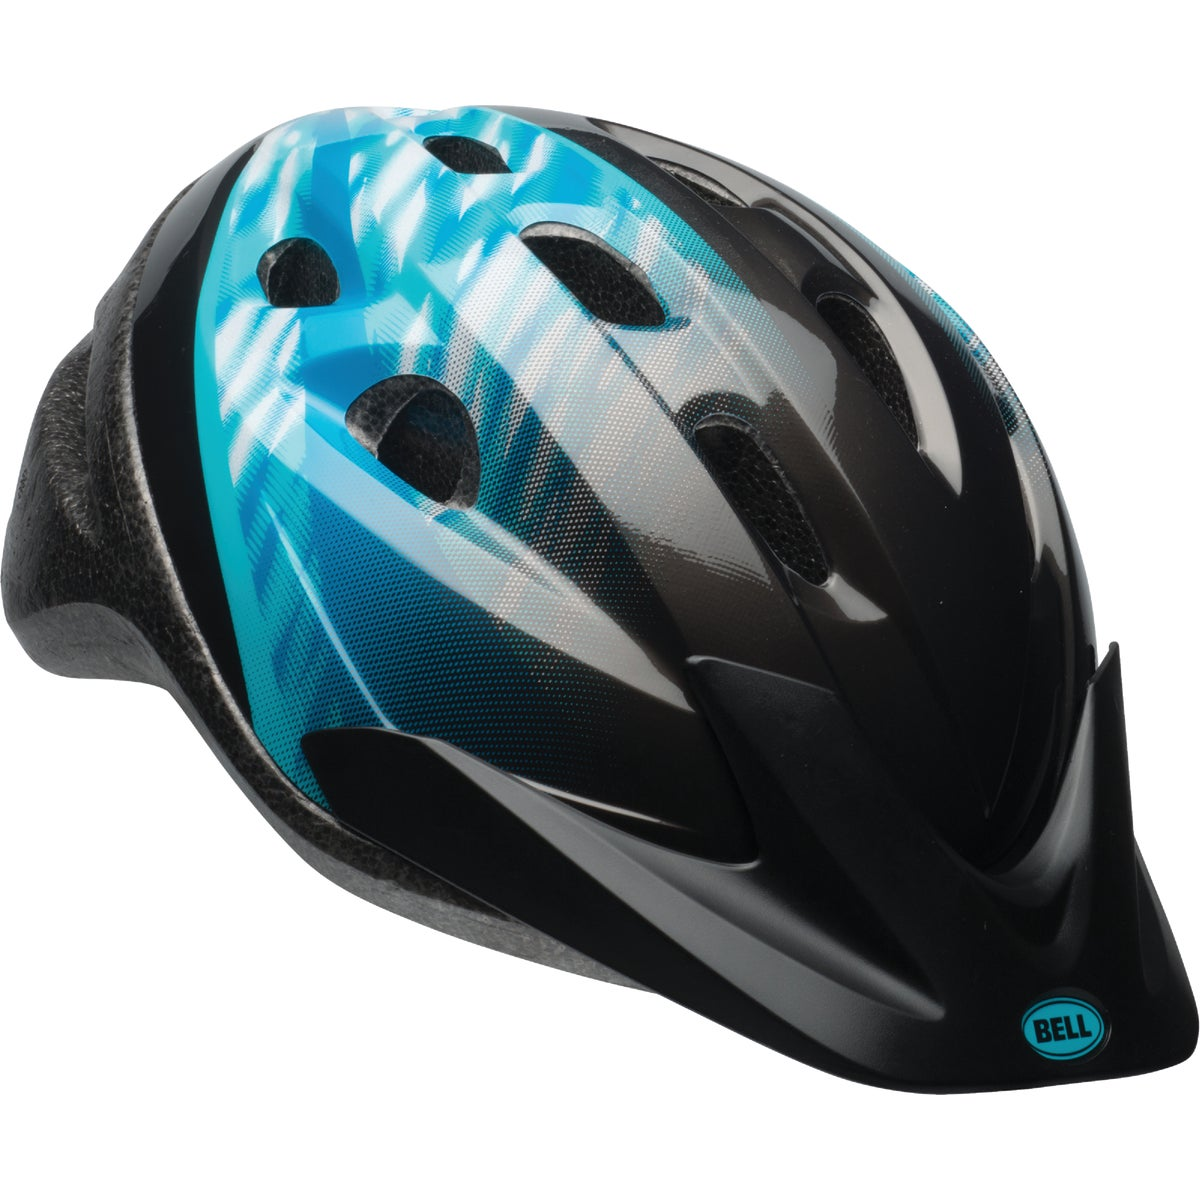 8+ GIRLS YOUTH HELMET - 1007930 by Bell Sports